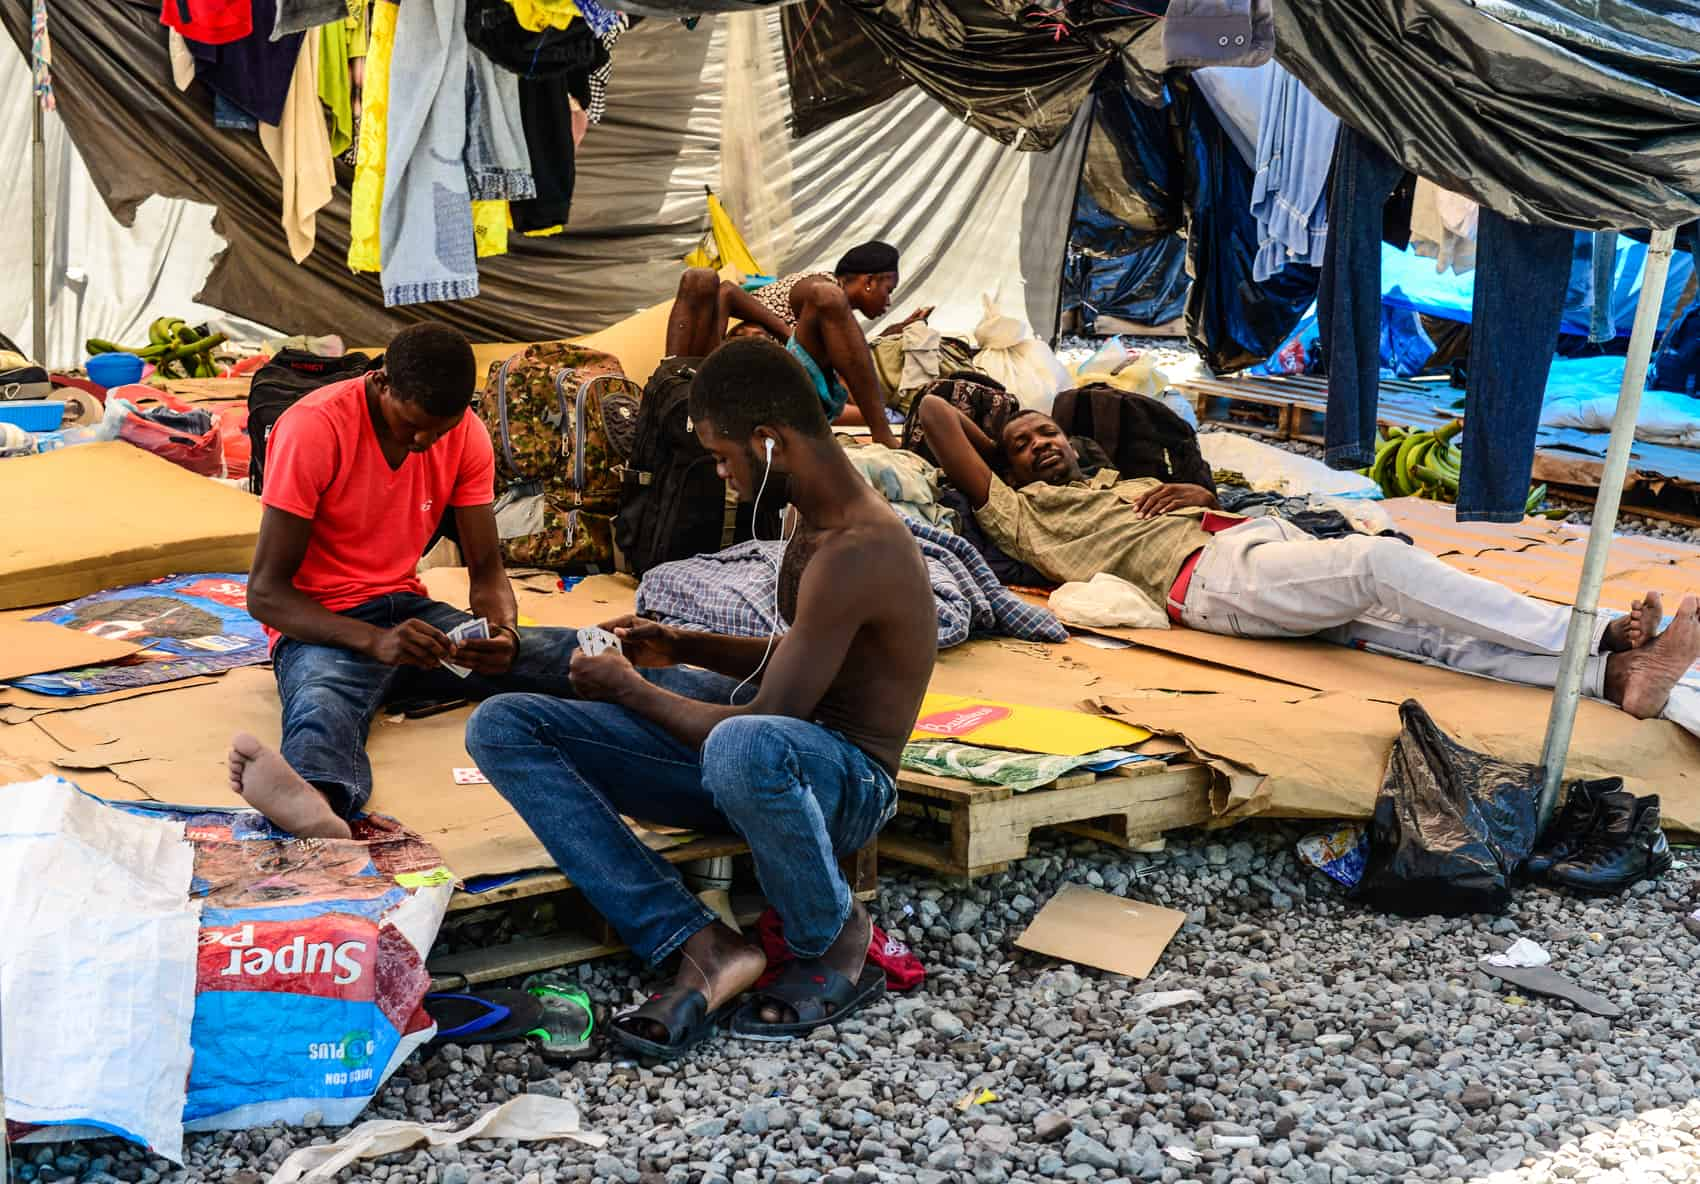 African migrants play cards in a Red Cross tent.